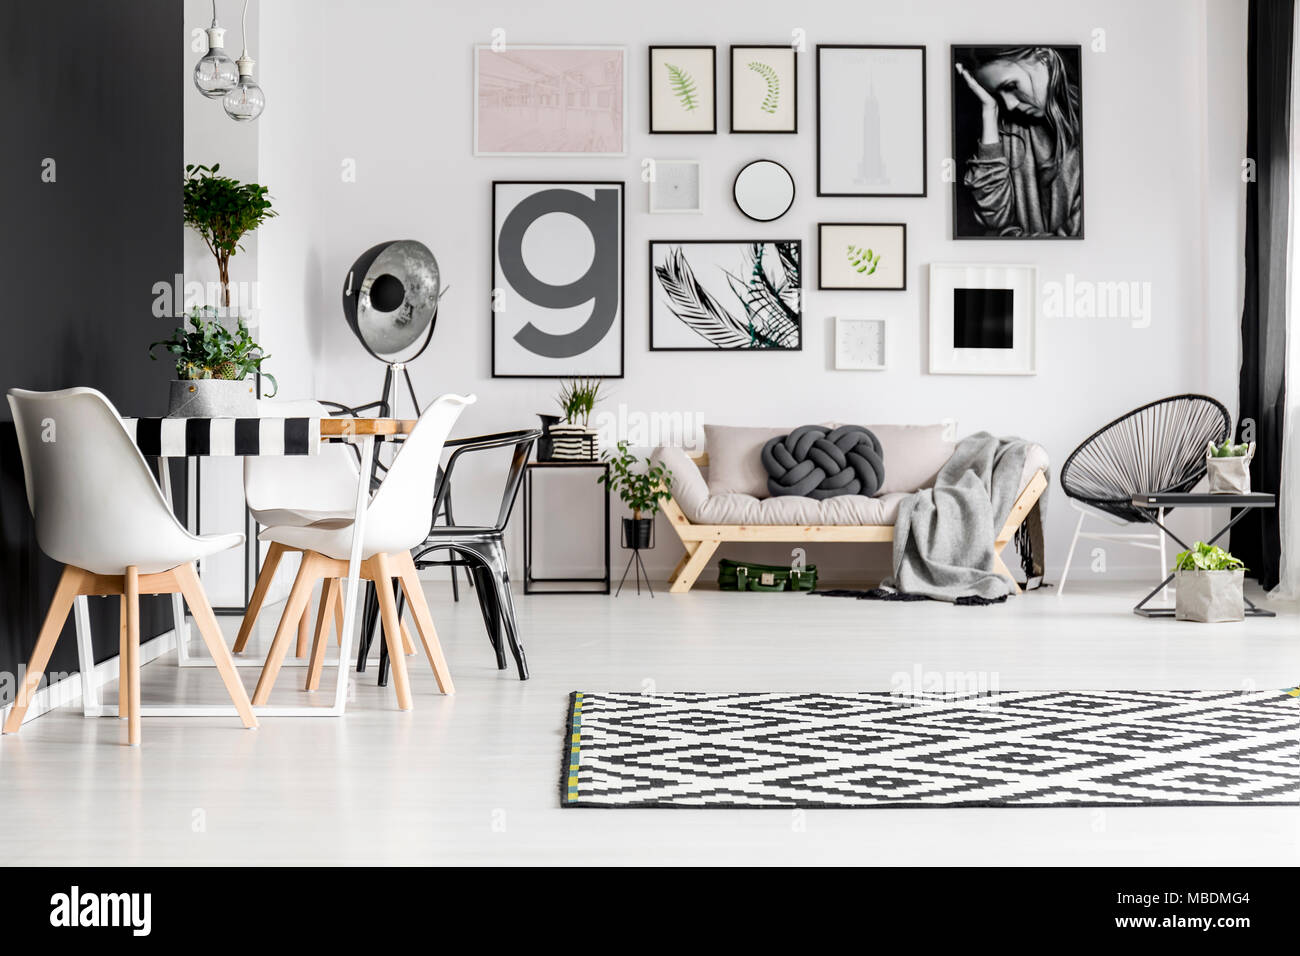 Art Gallery Dining Table With Chairs And Sofa Blanket Knot Pillow In A White Living Room Interior